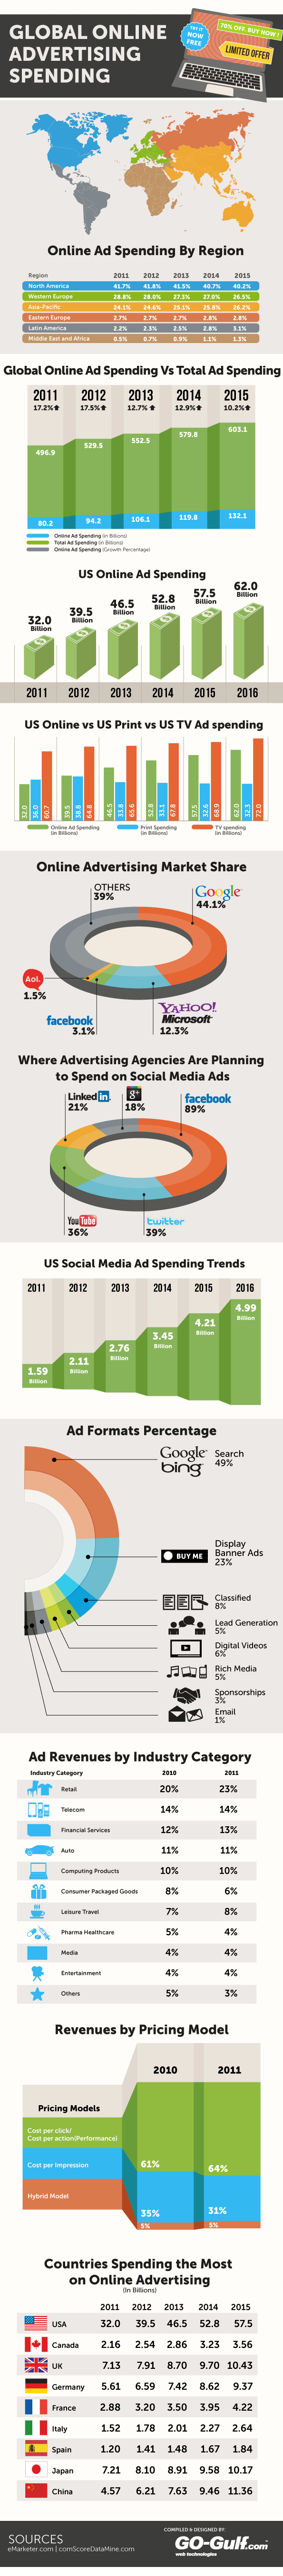 Global Online Advertising Spending Statistics